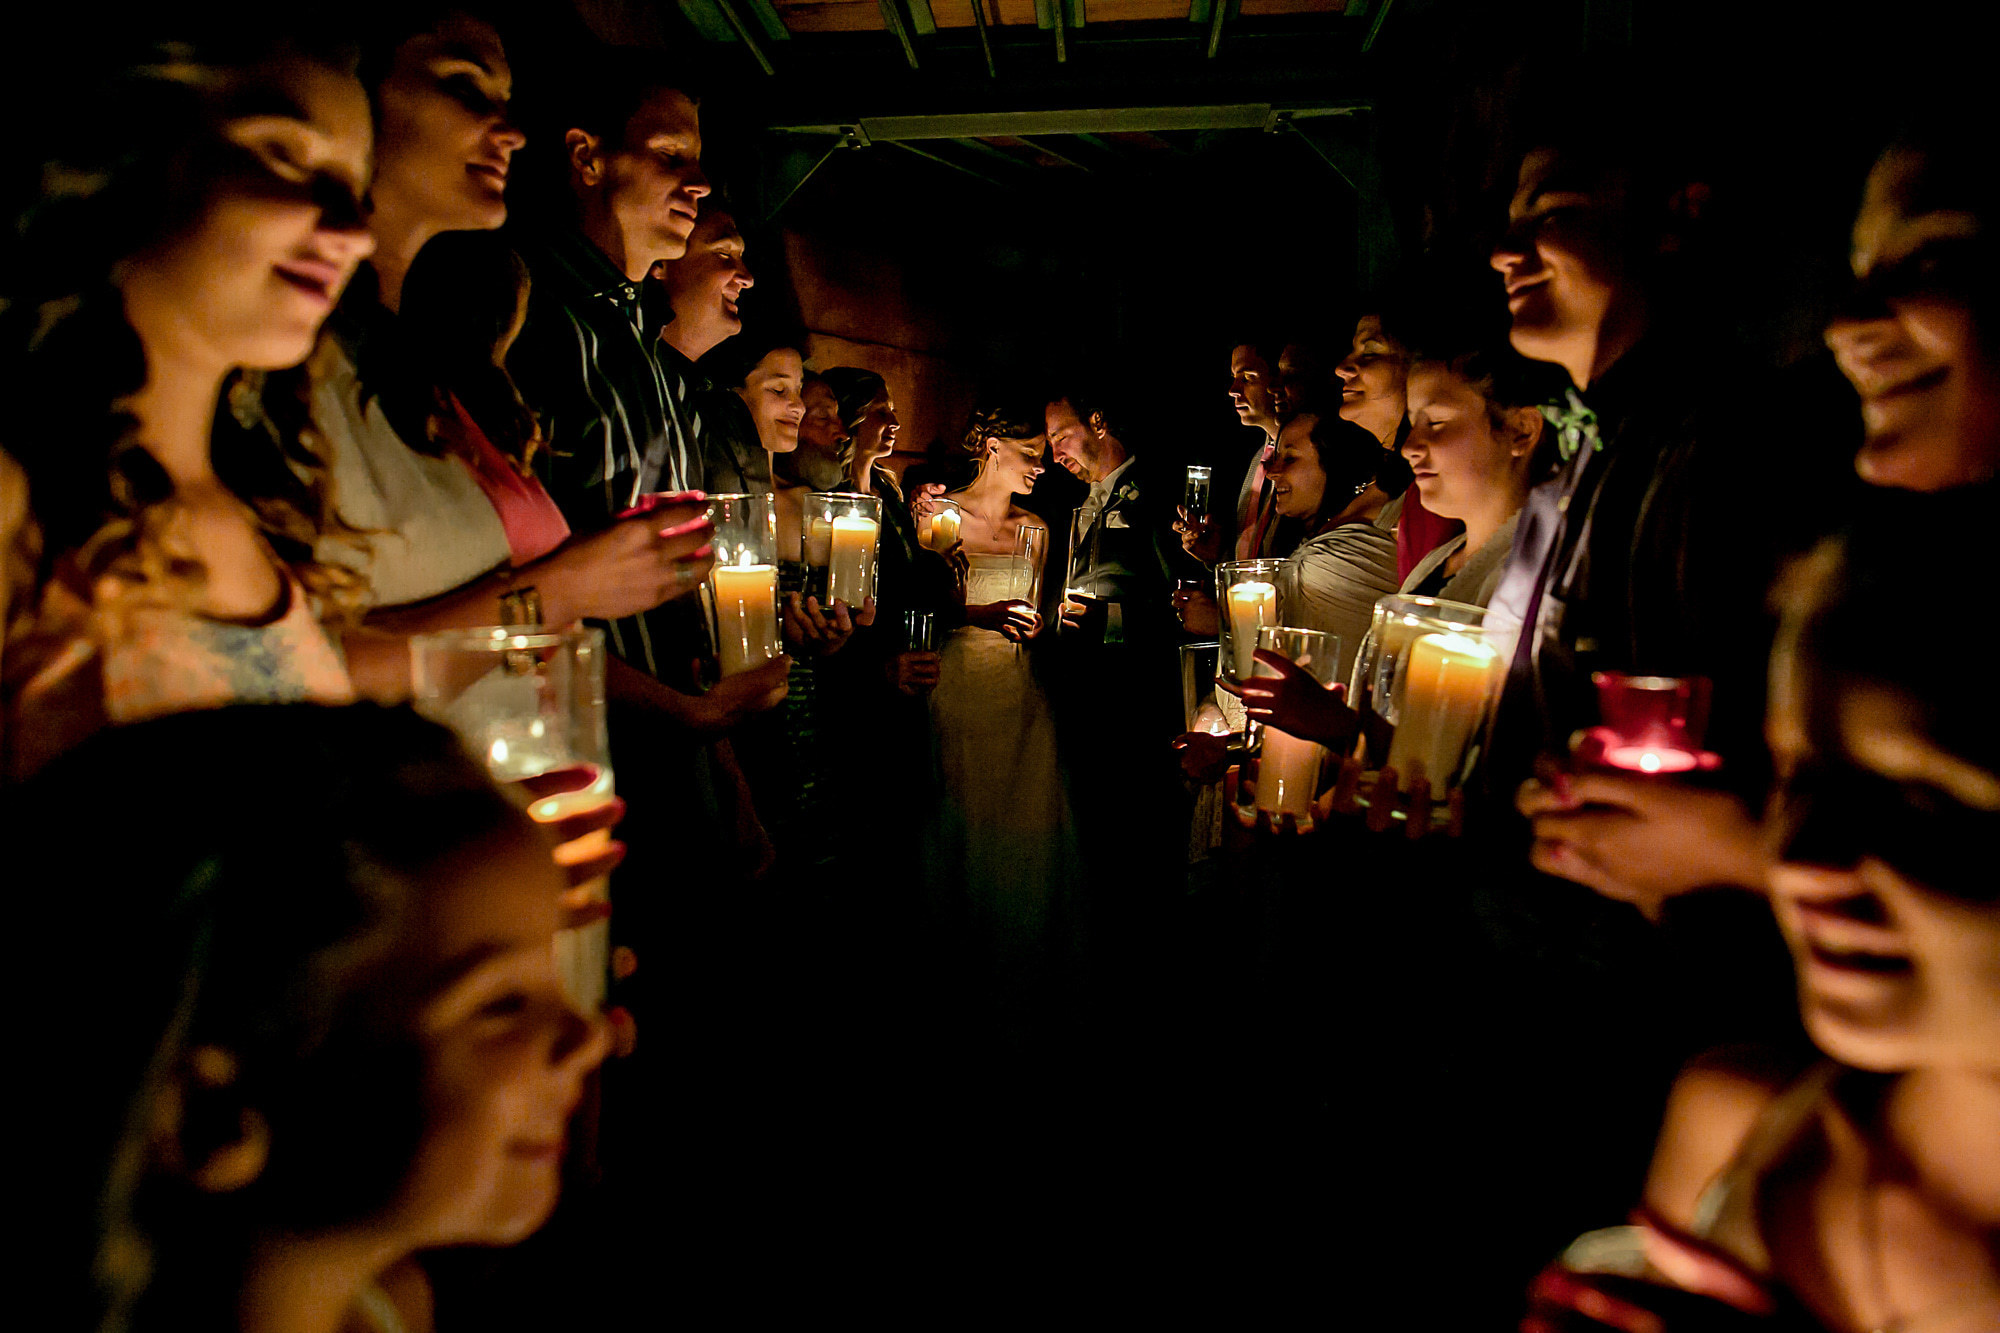 candlelight-prayers-with-guests-worlds-best-wedding-photographers-portland-wedding-photographers